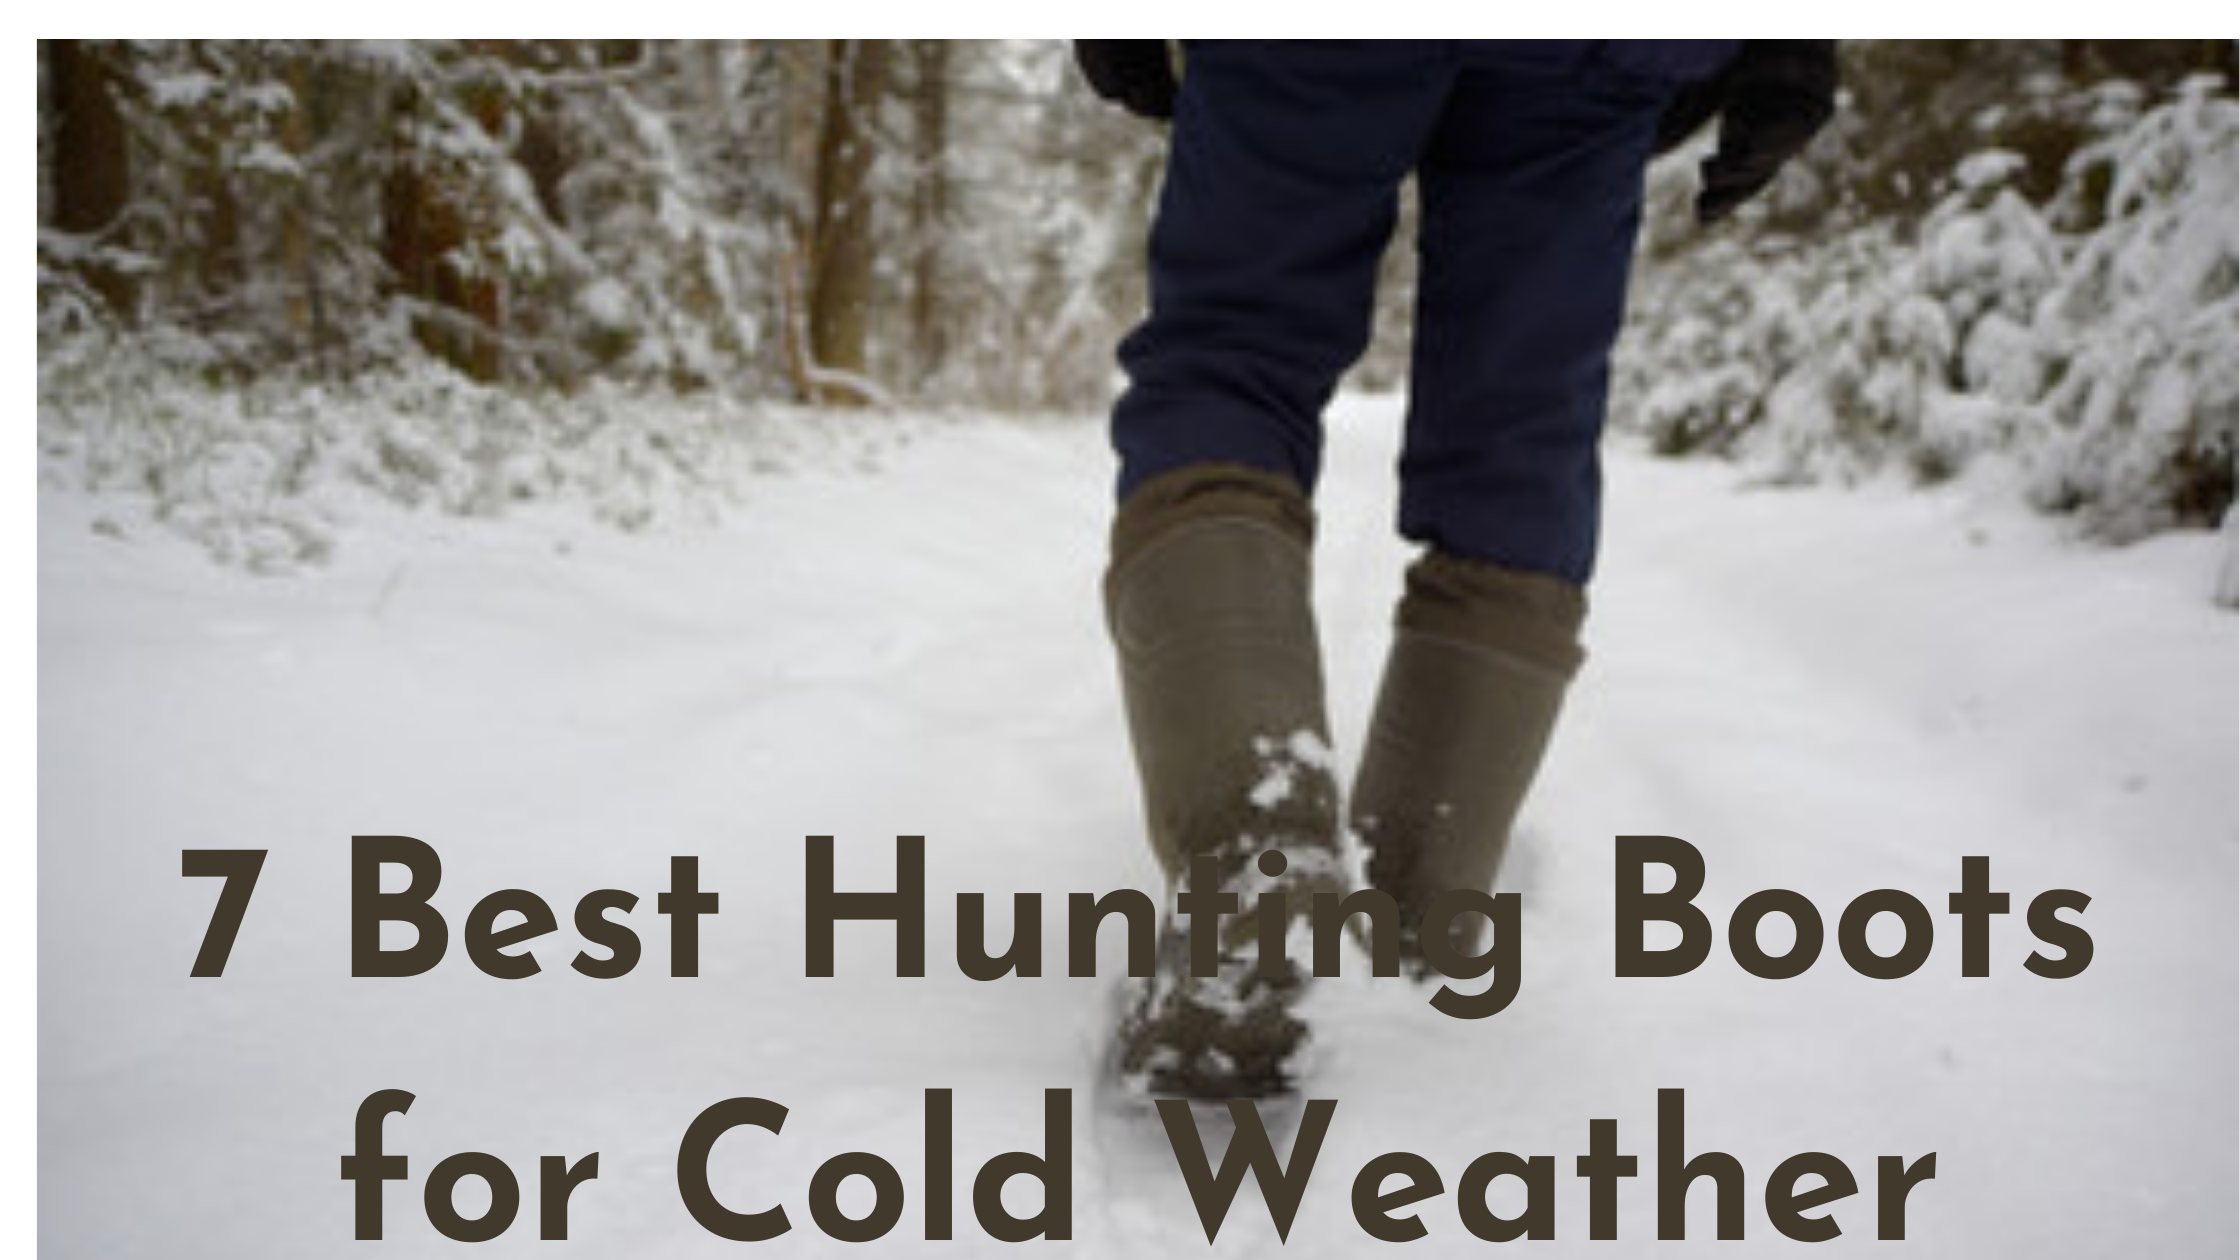 a hunter walking with best hunting boots for cold weather